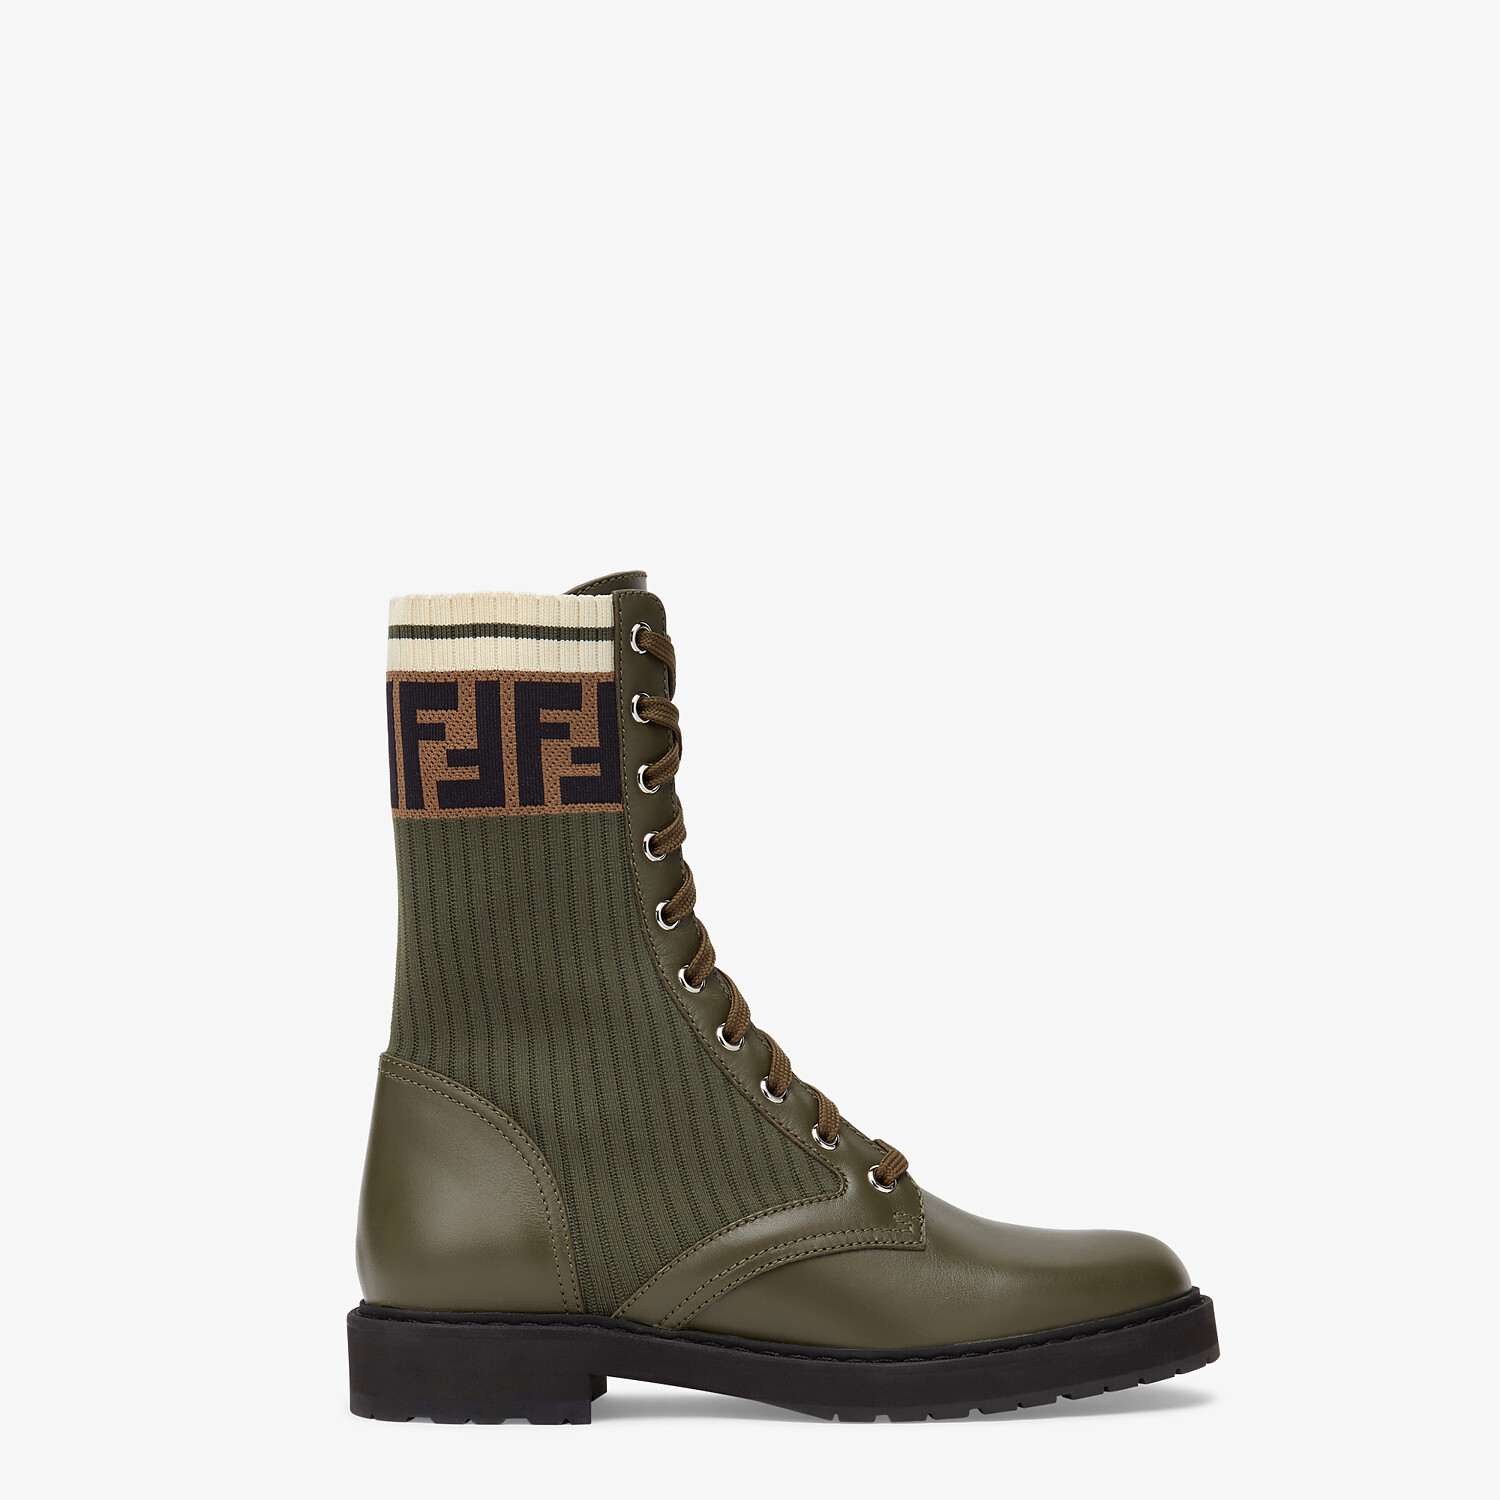 FENDI ANKLE BOOTS - Green leather biker boots - view 1 detail